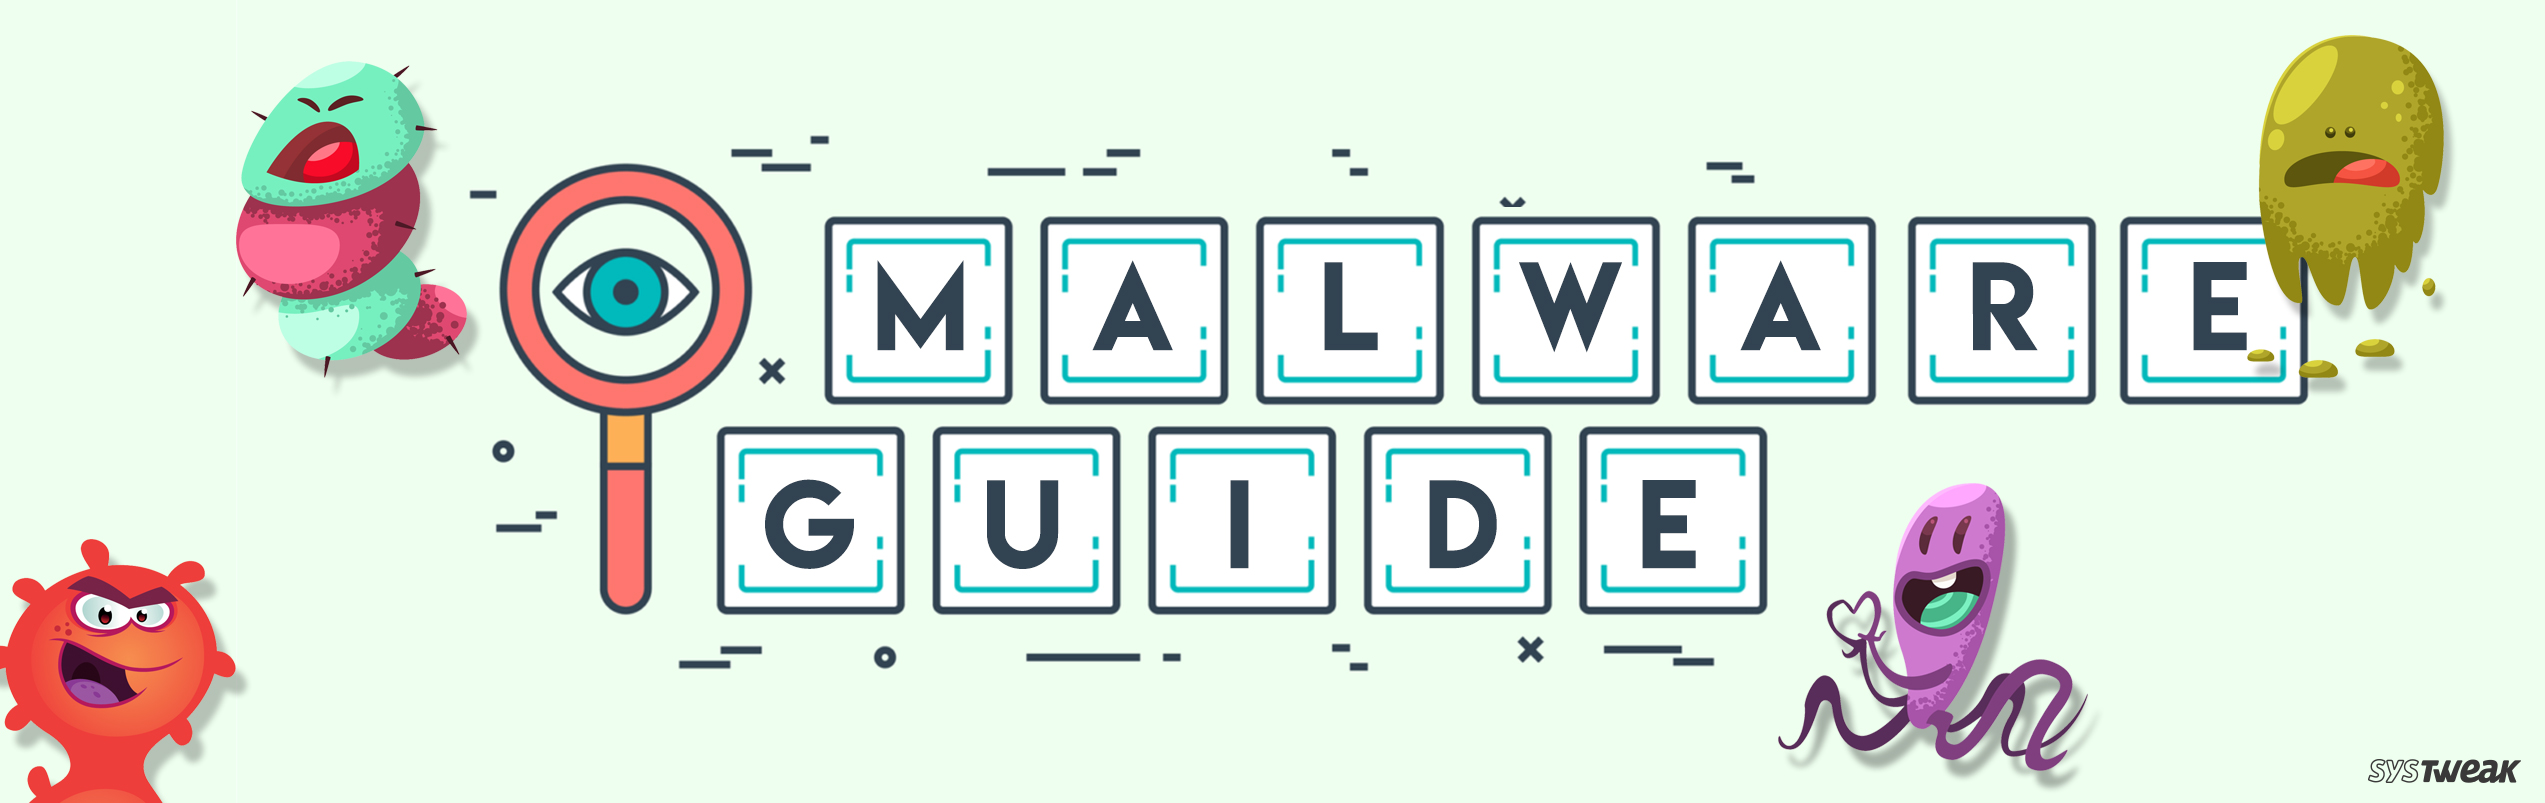 Malware: Everything You Need To Know